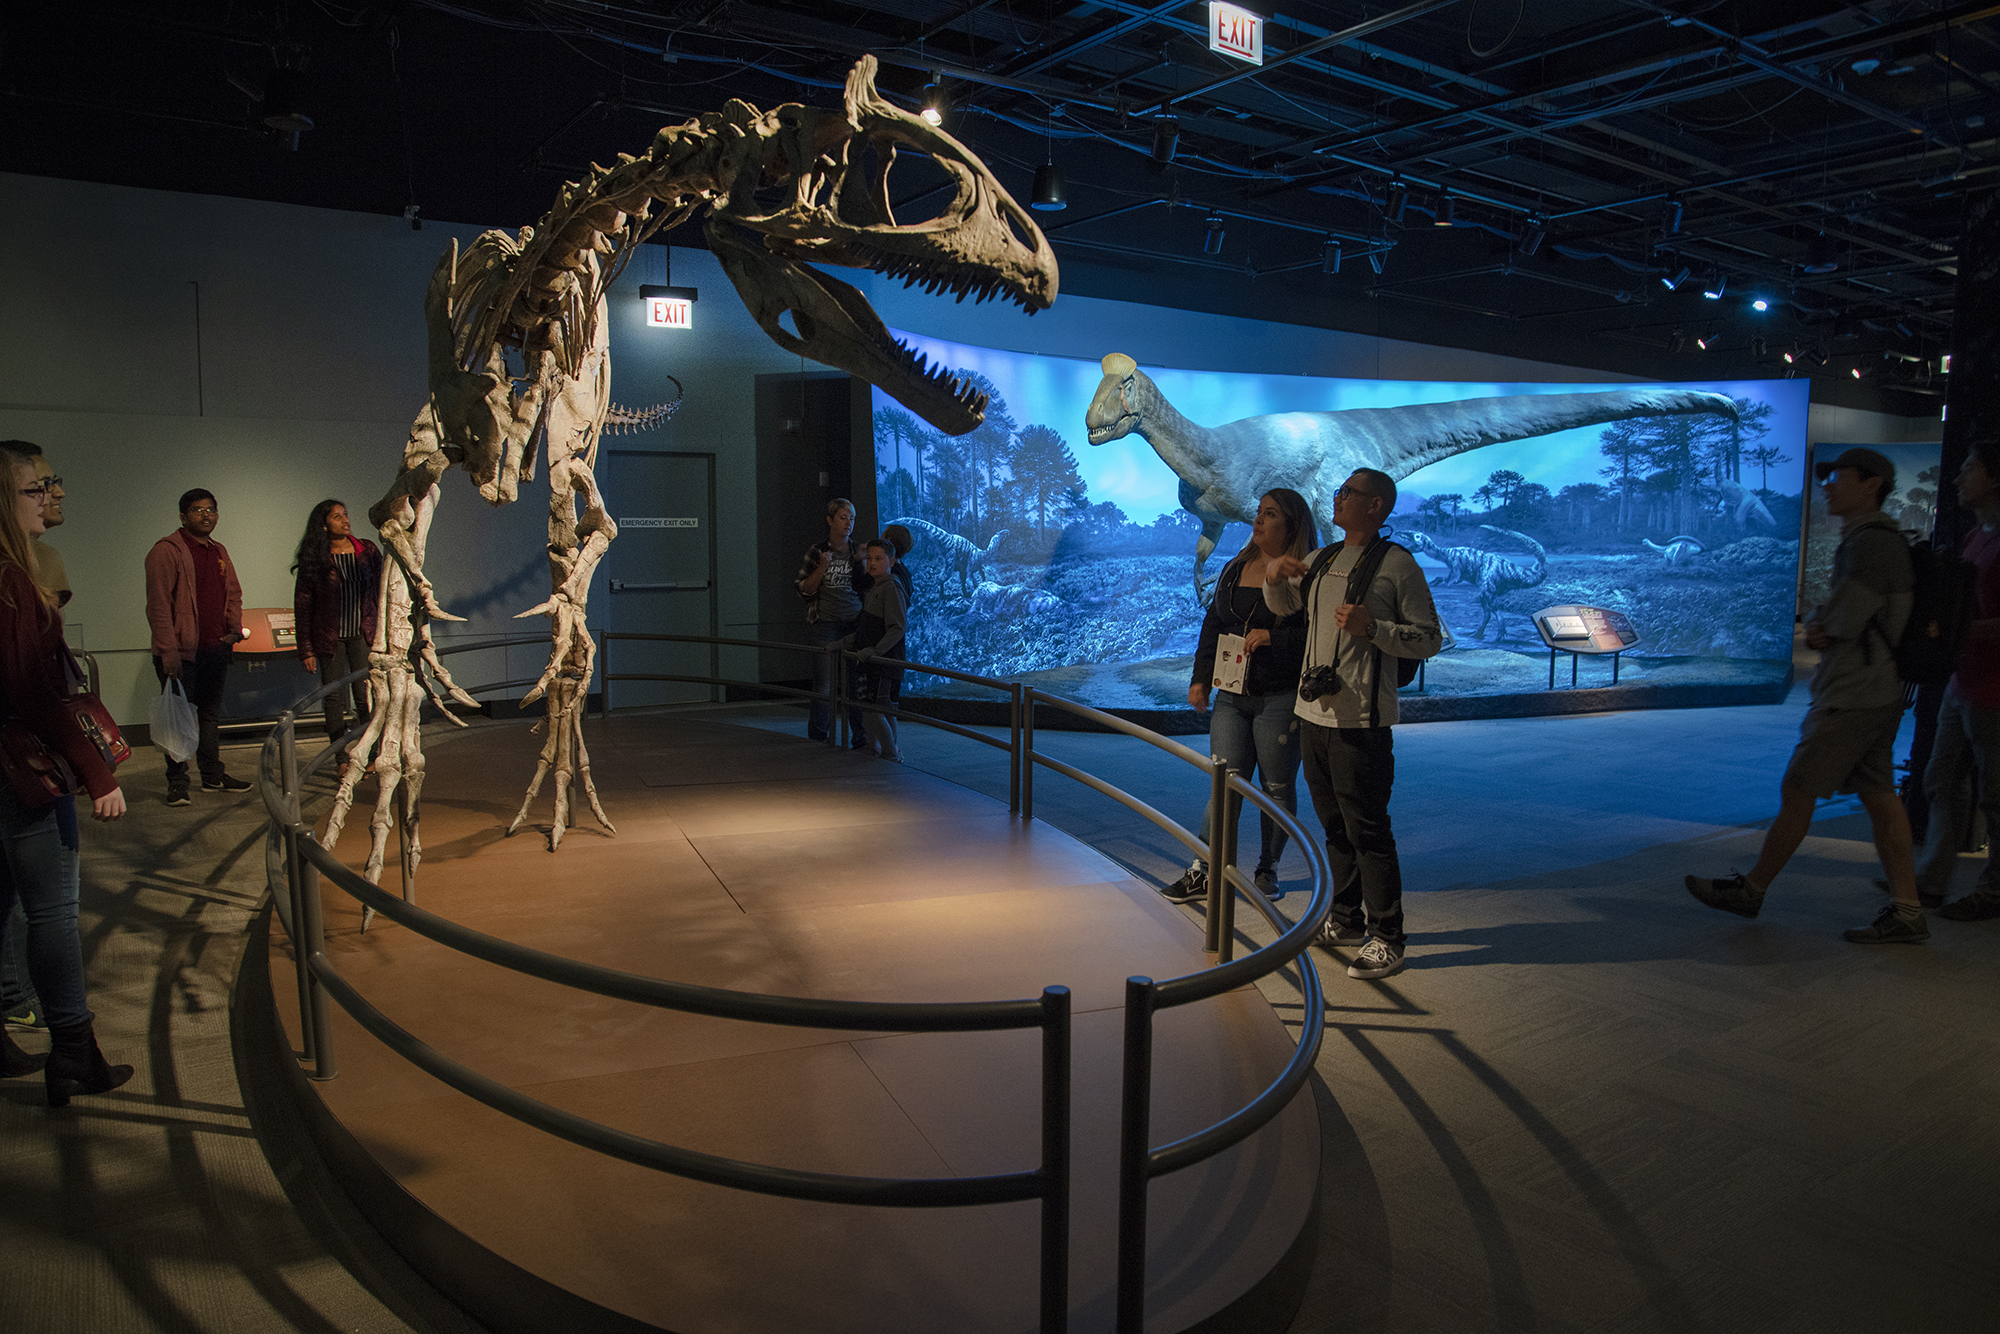 People look up at a cast of a Cryolophosaurus dinosaur skeleton on display behind a railing. The dinosaur stands on two hind legs and appears menacing, with sharp teeth. In the background, a dinosaur model is visible in a diorama under blue light.